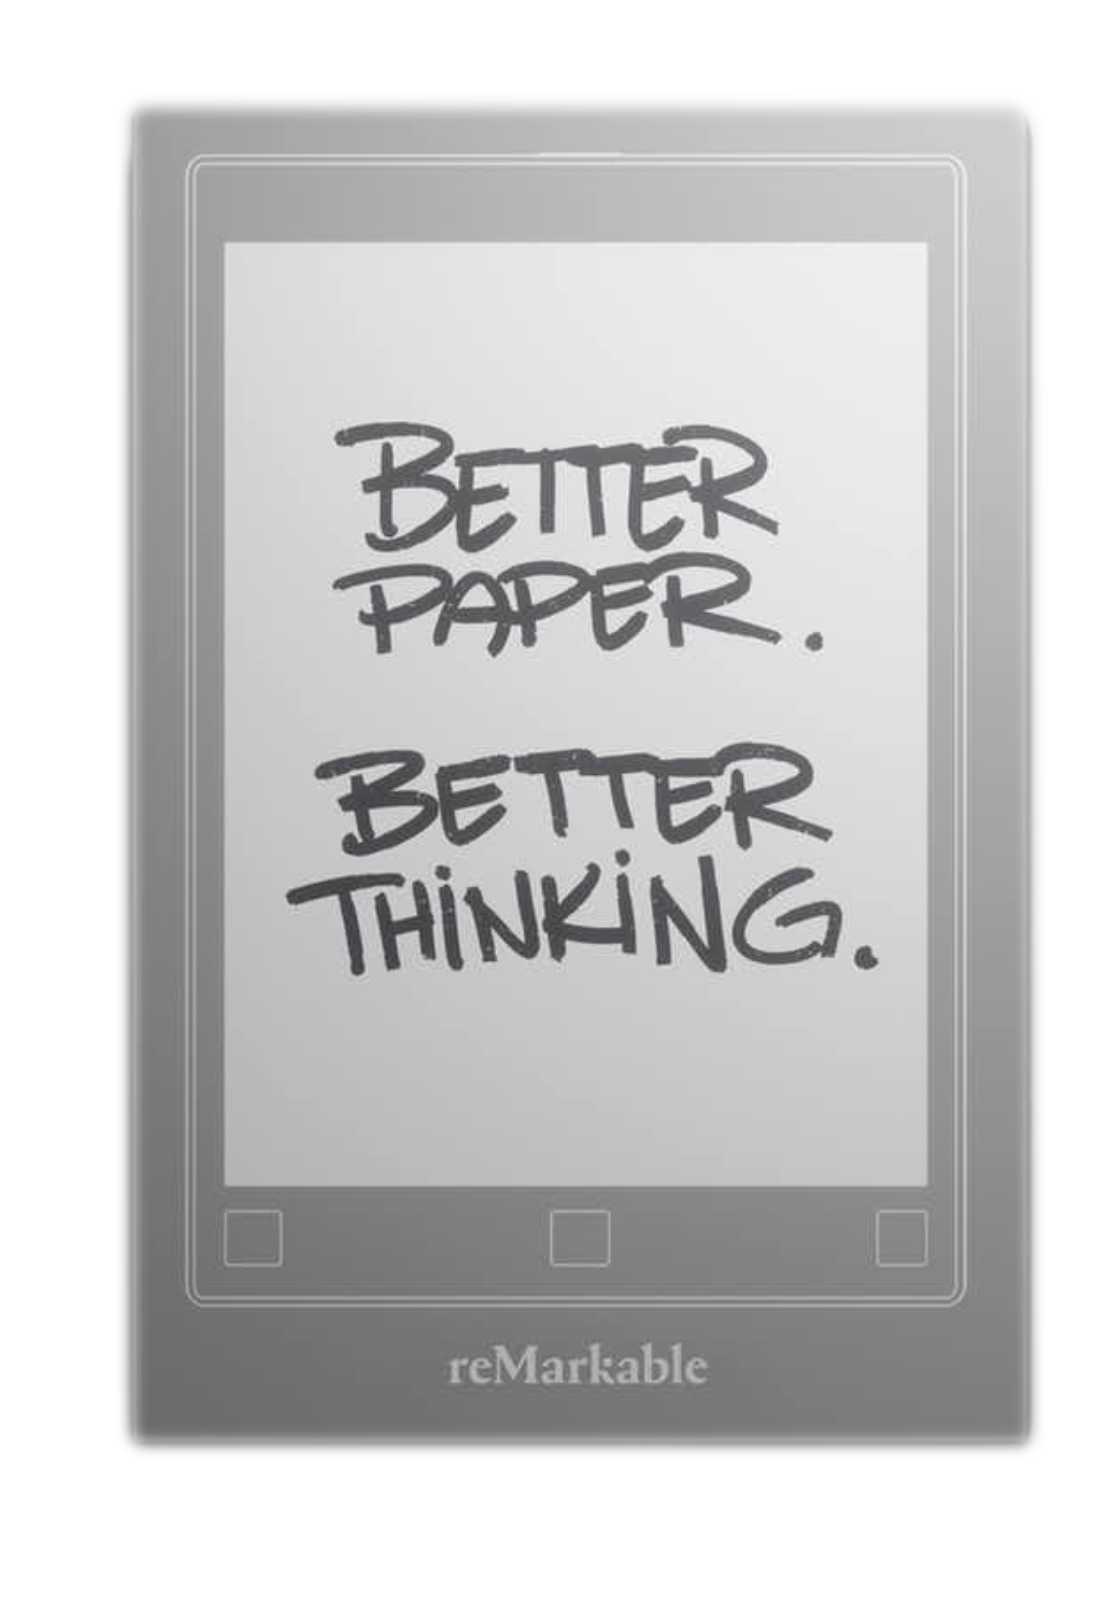 reMarkable digital notepad -  Review